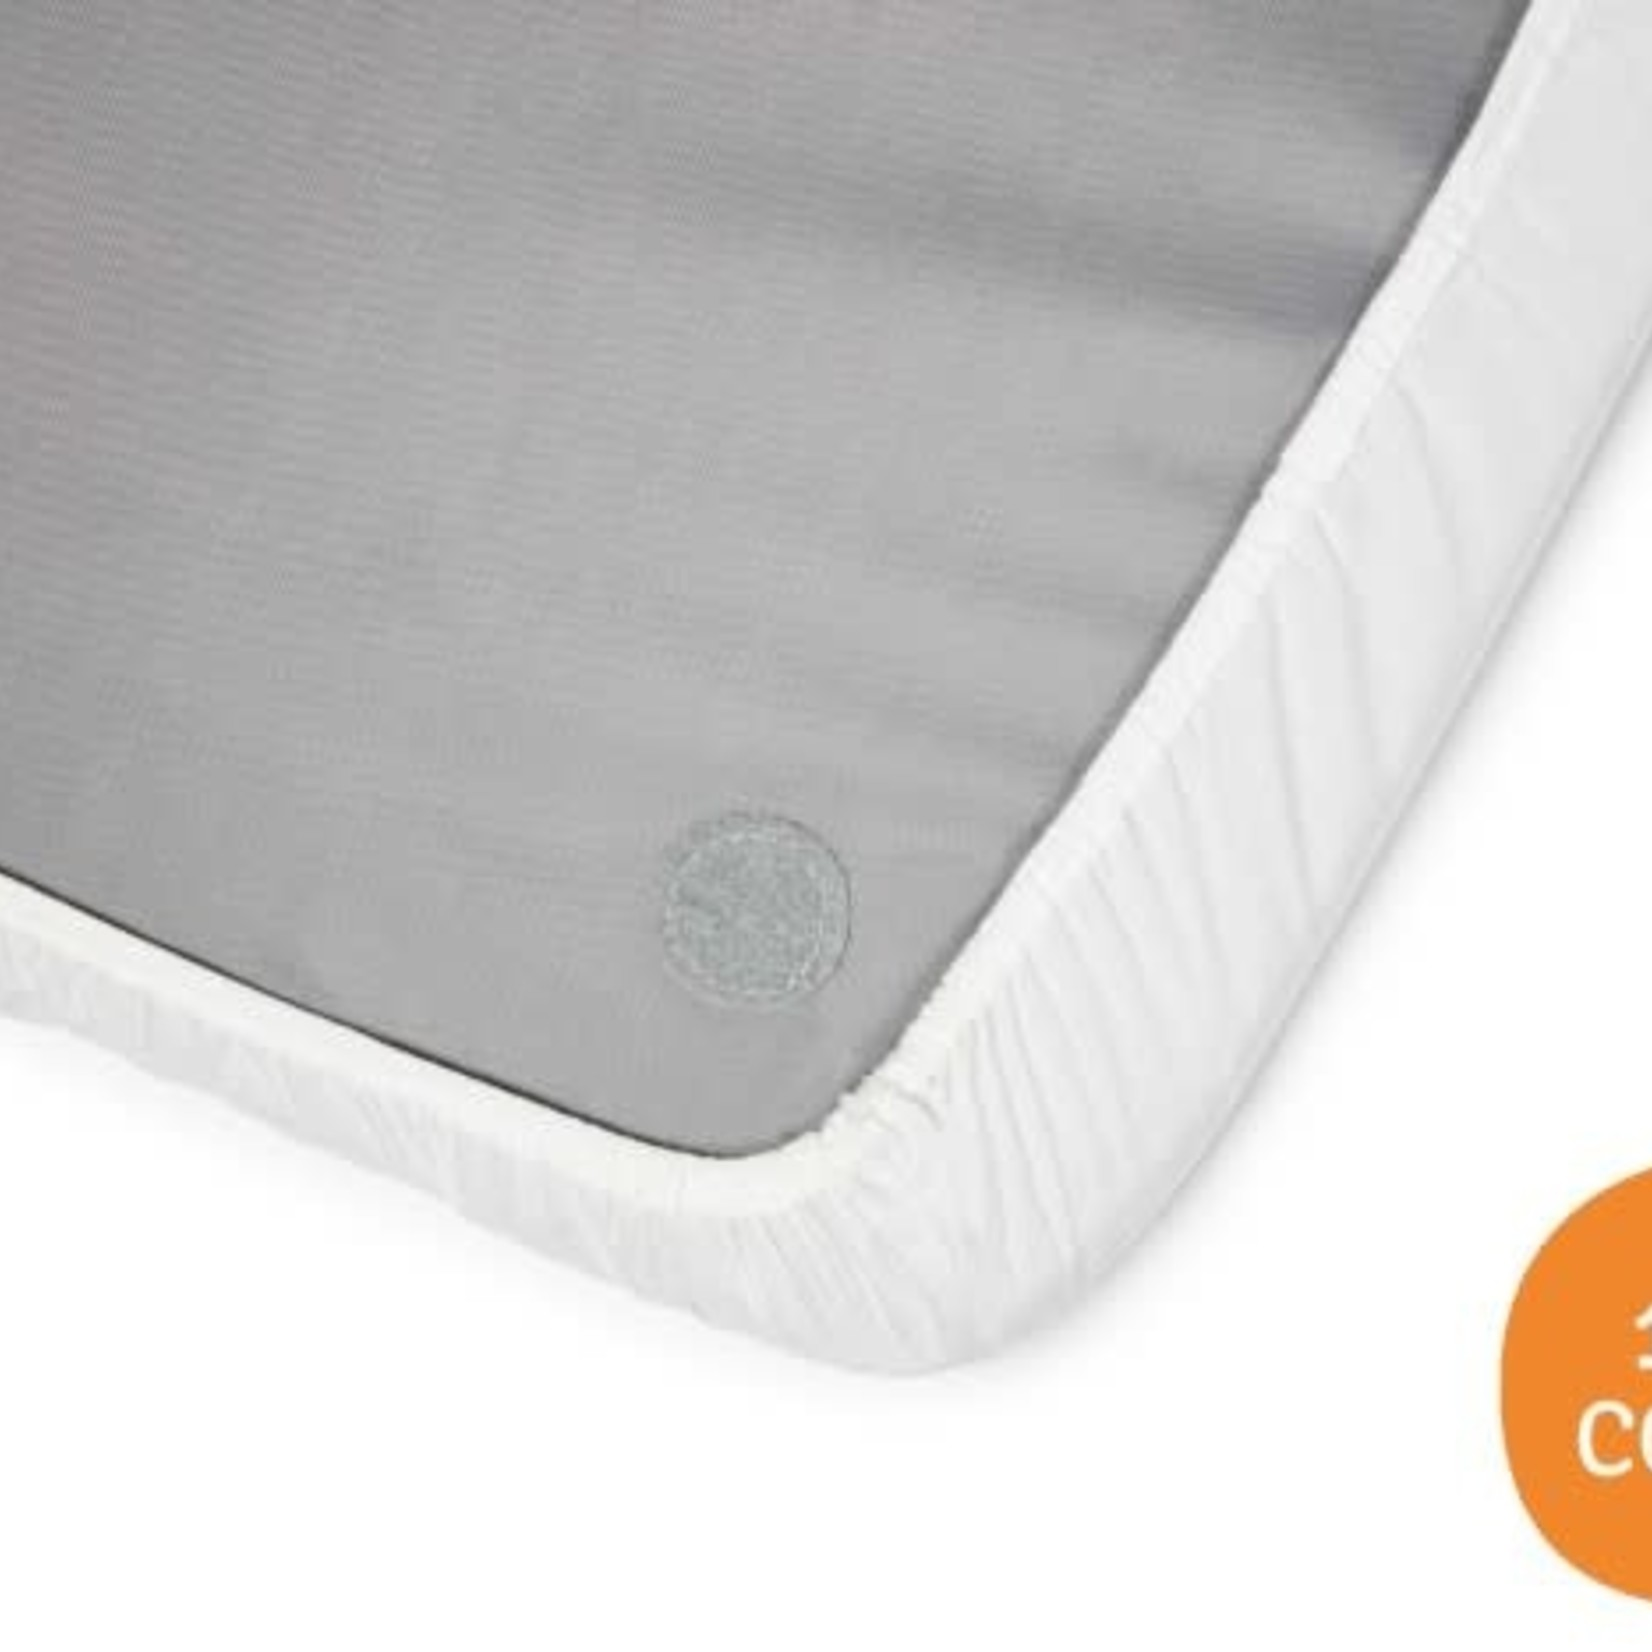 AeroMoov Instant travel cot - Fitted sheet